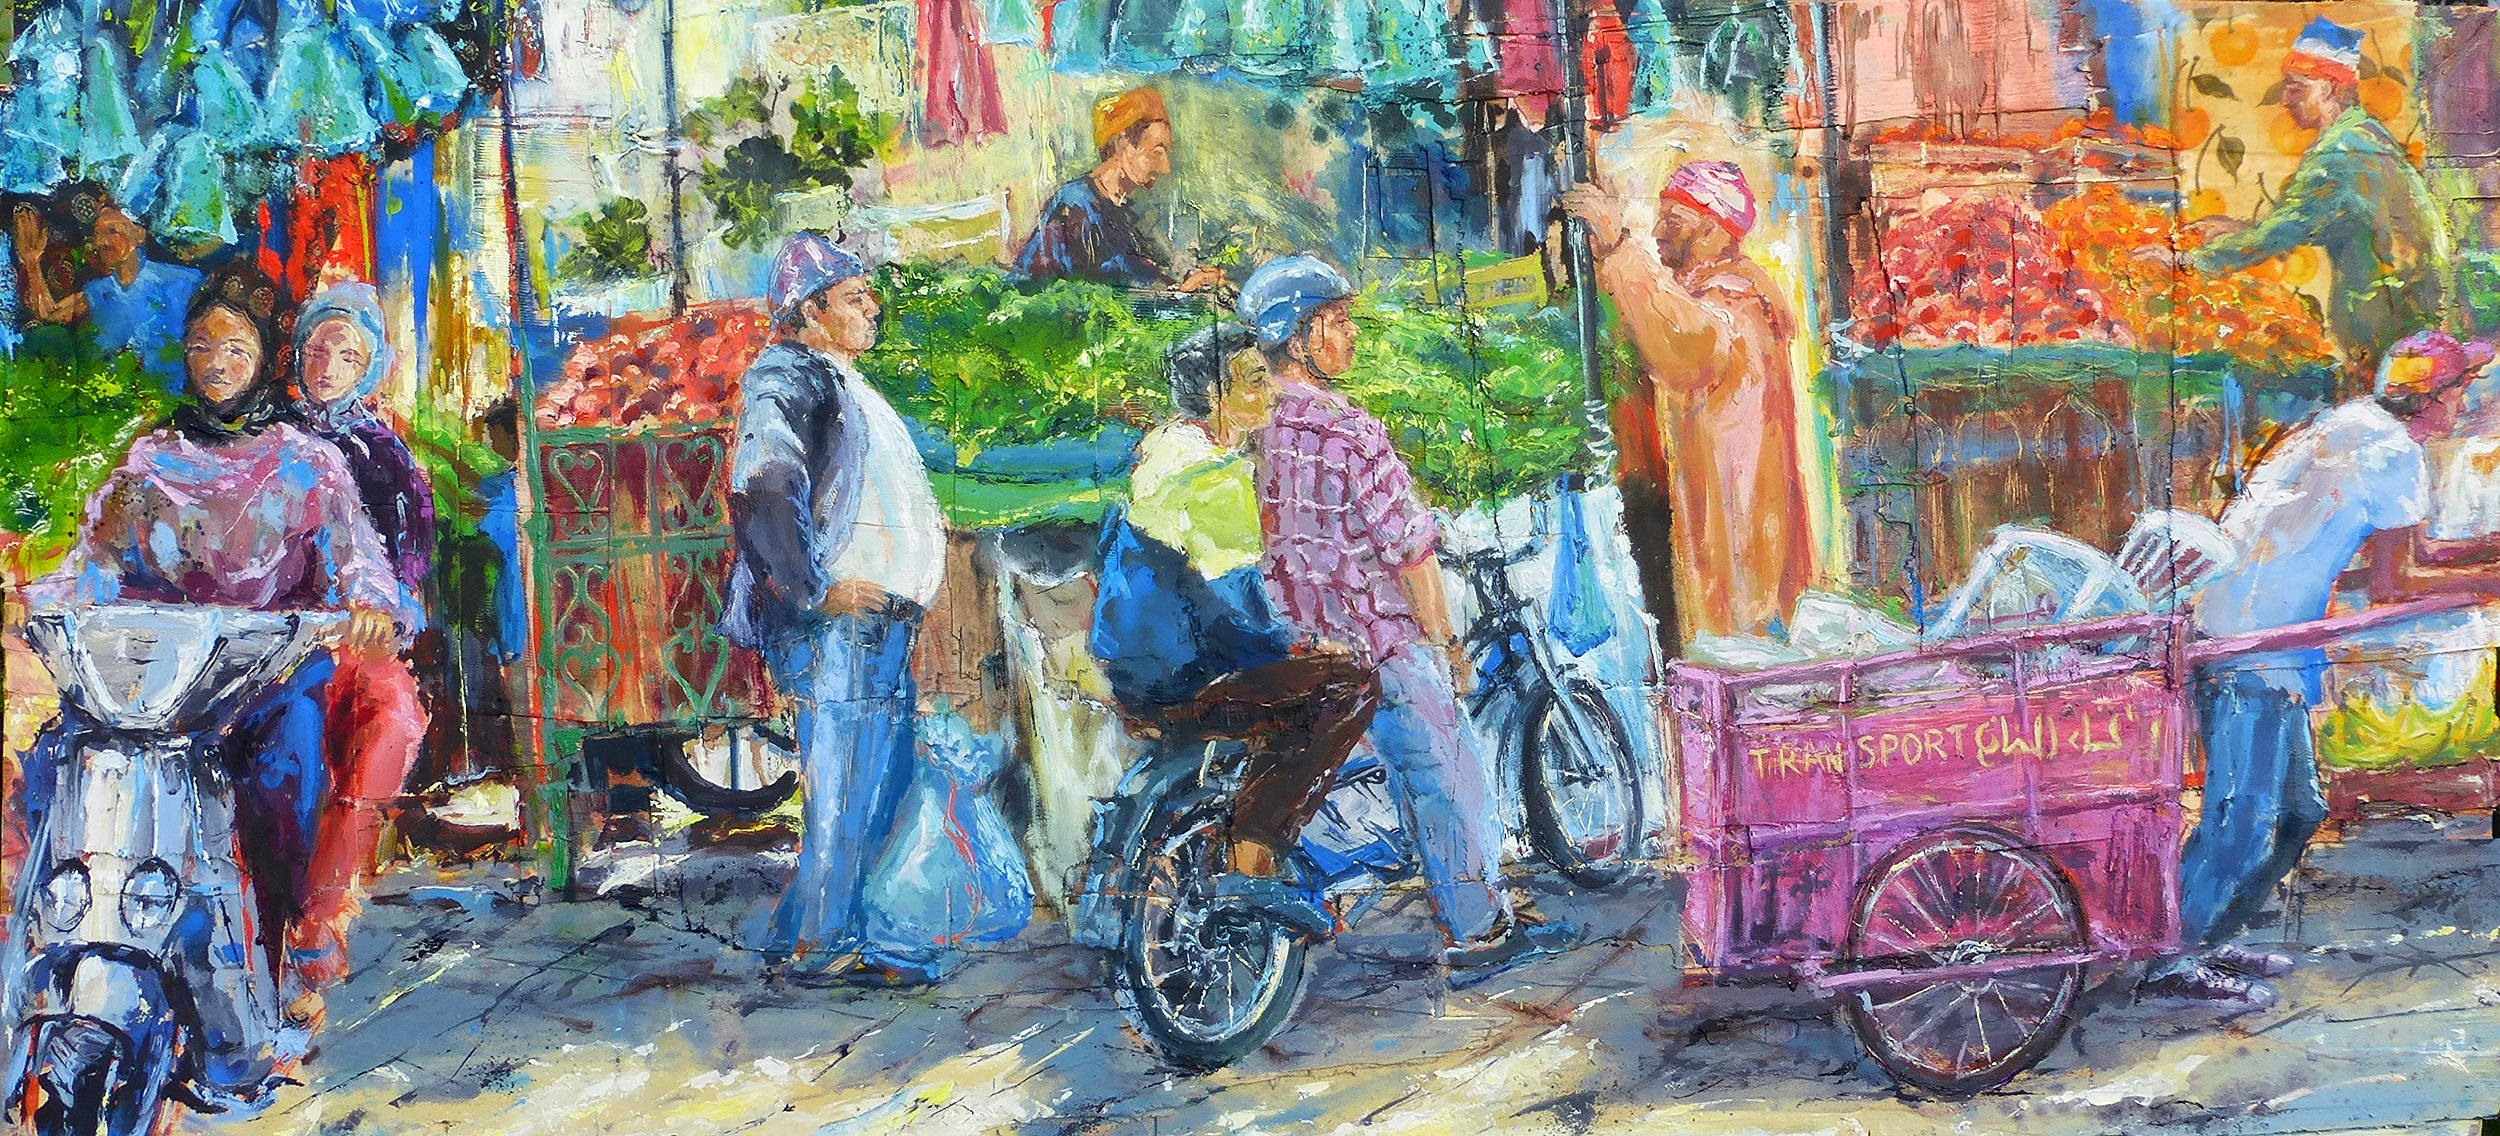 Marrakech Souk, Morocco, Oil and collage on wood